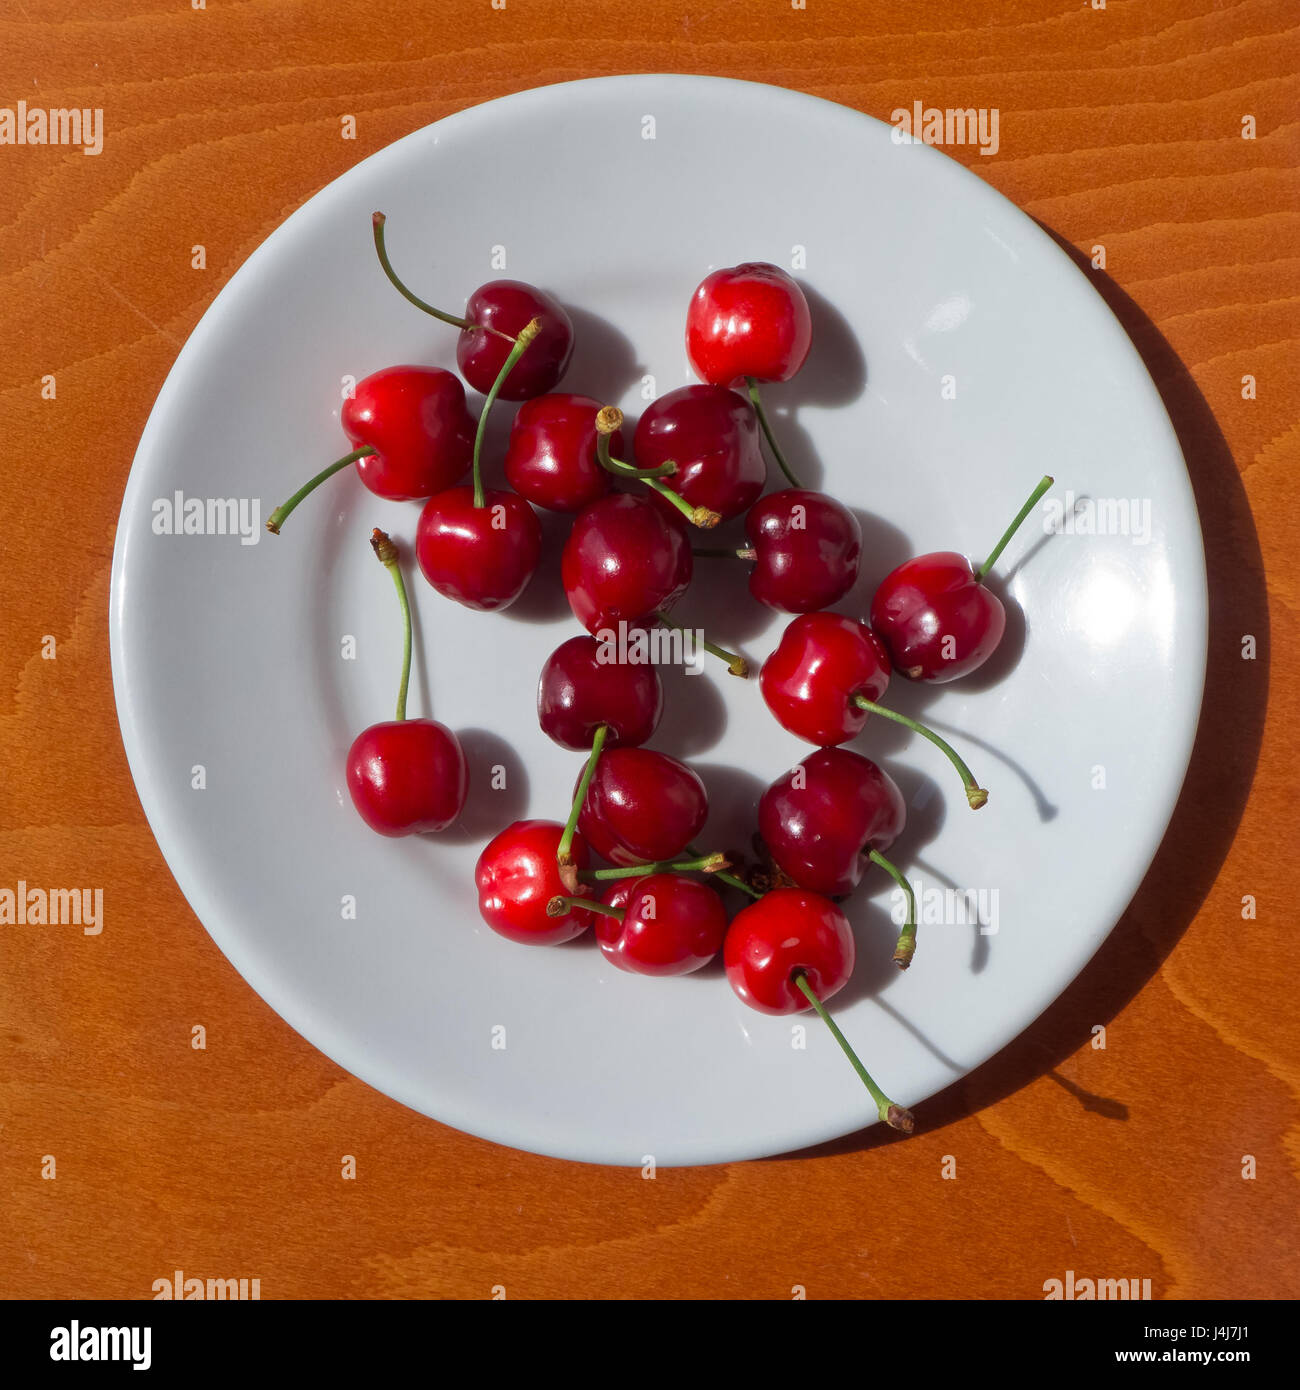 Cherries in the dish to eating. - Stock Image